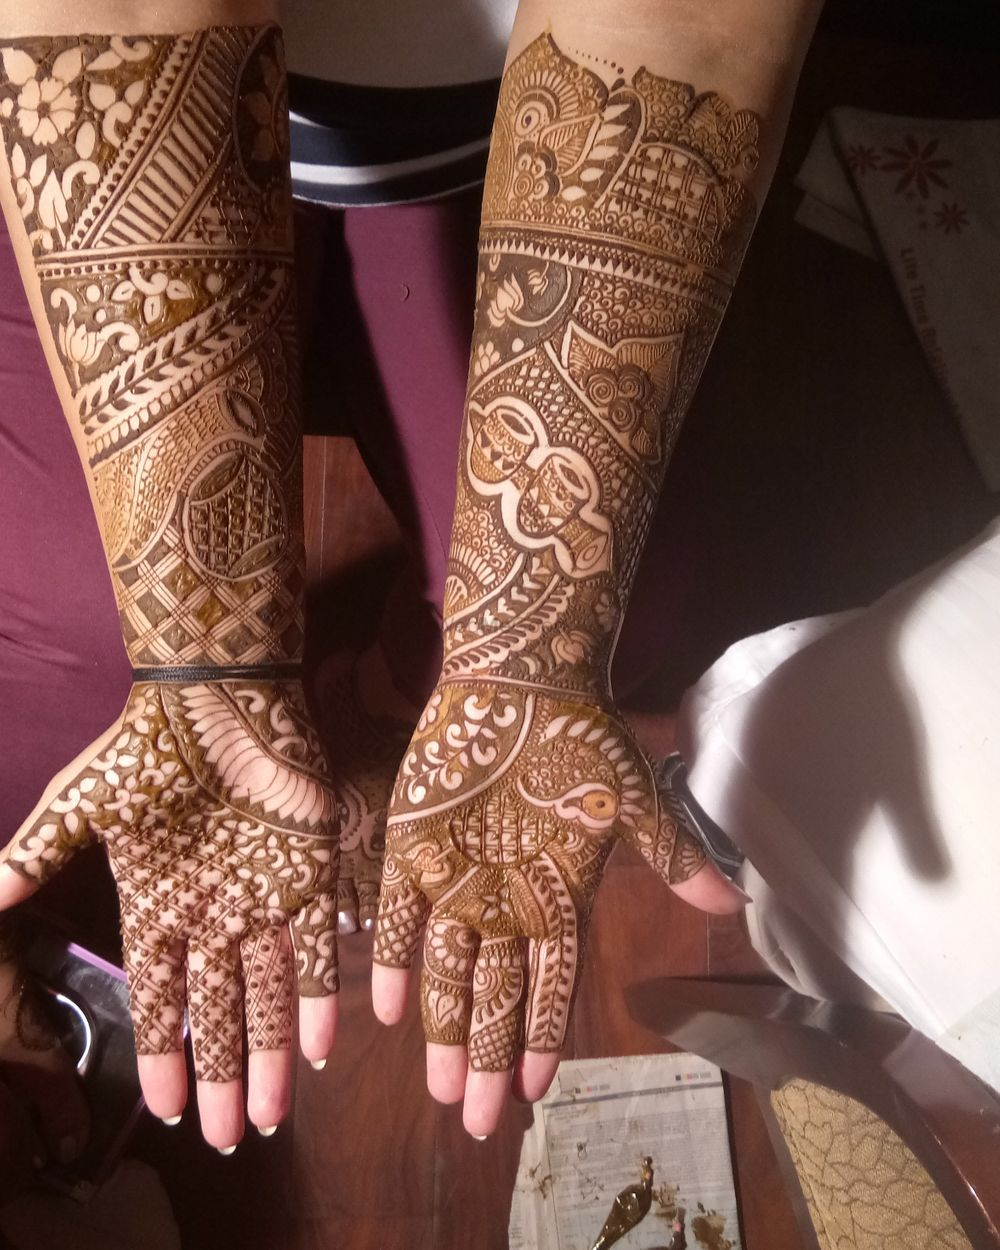 Photo From Deepanti bridal mehendi on 17 th nov 2018 - By Shalini Mehendi Artist